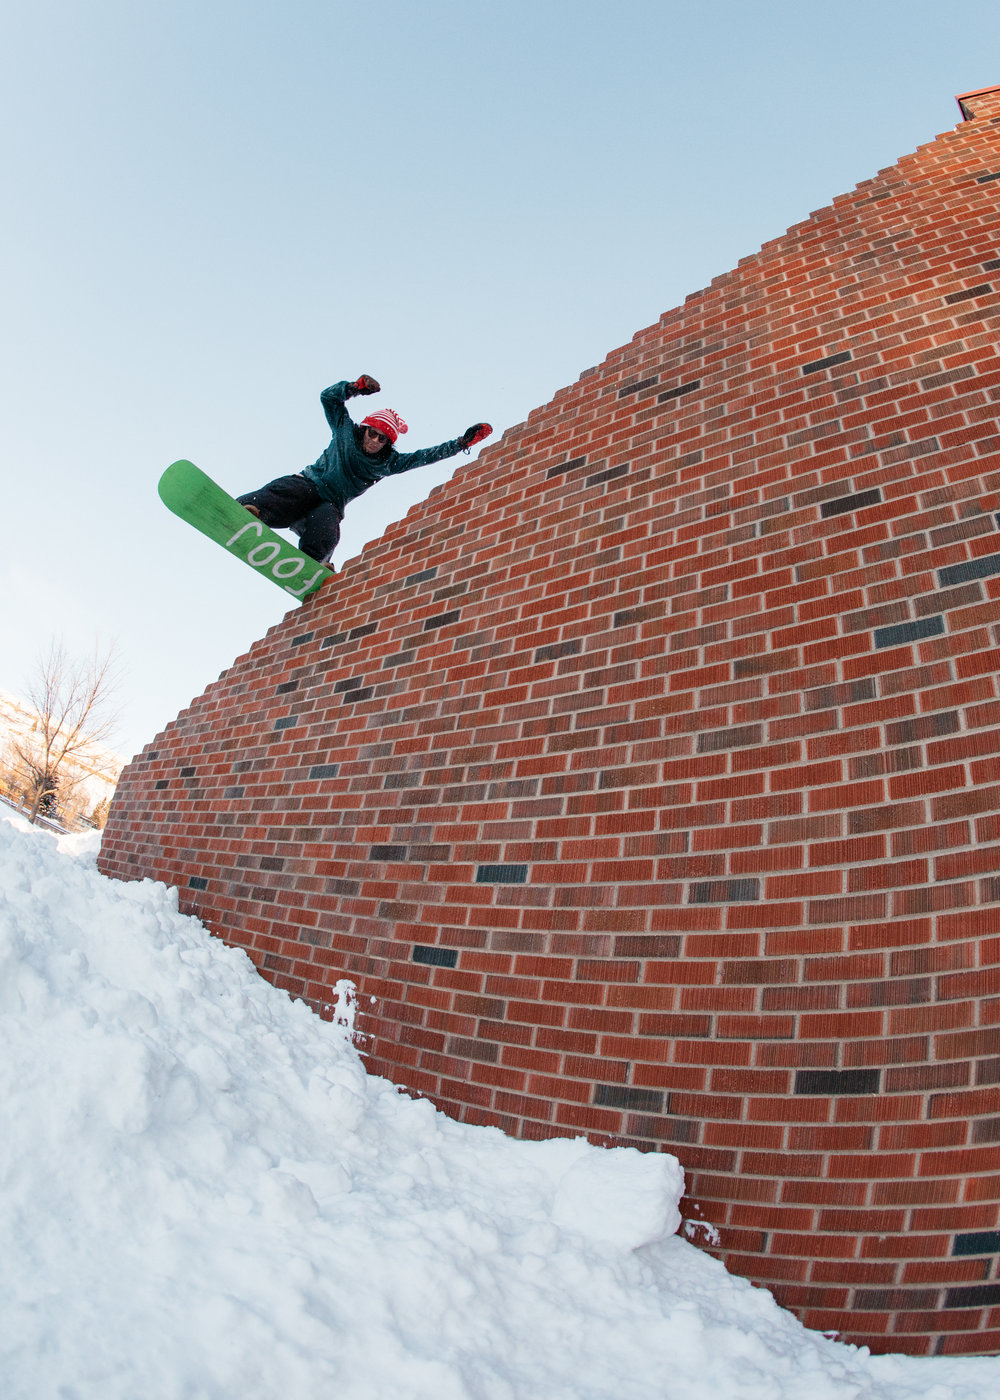 Chris_Fooj_FS_boardslide_Brick_Ledge_Jordan_Morse_Photo-1726.jpg